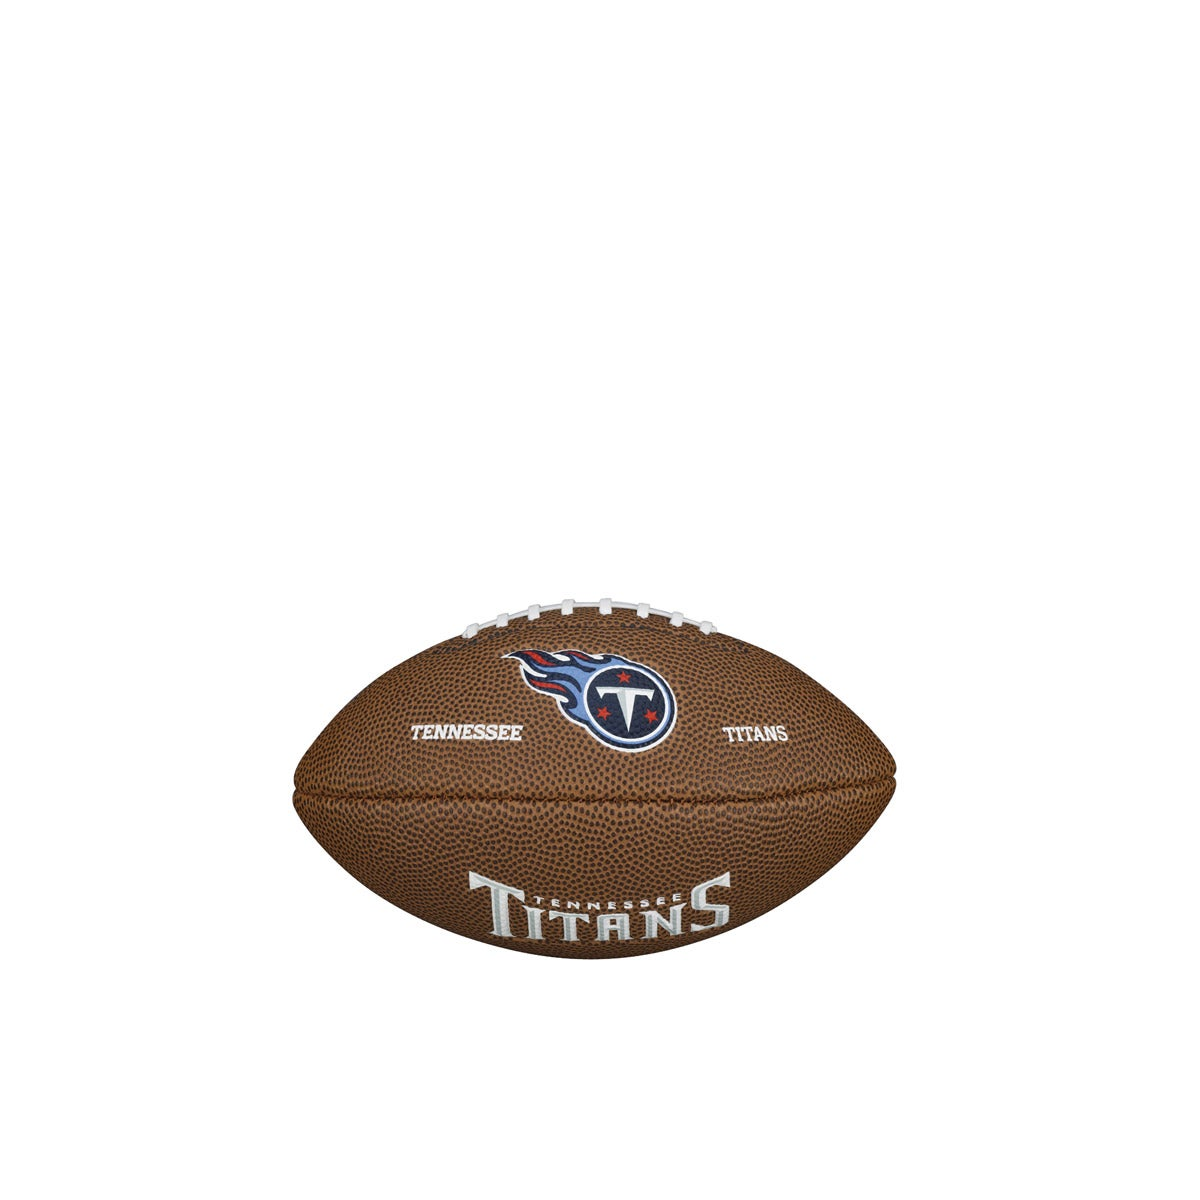 ? NFL TEAM LOGO MINI SIZE FOOTBALL - TENNESSEE TITANS